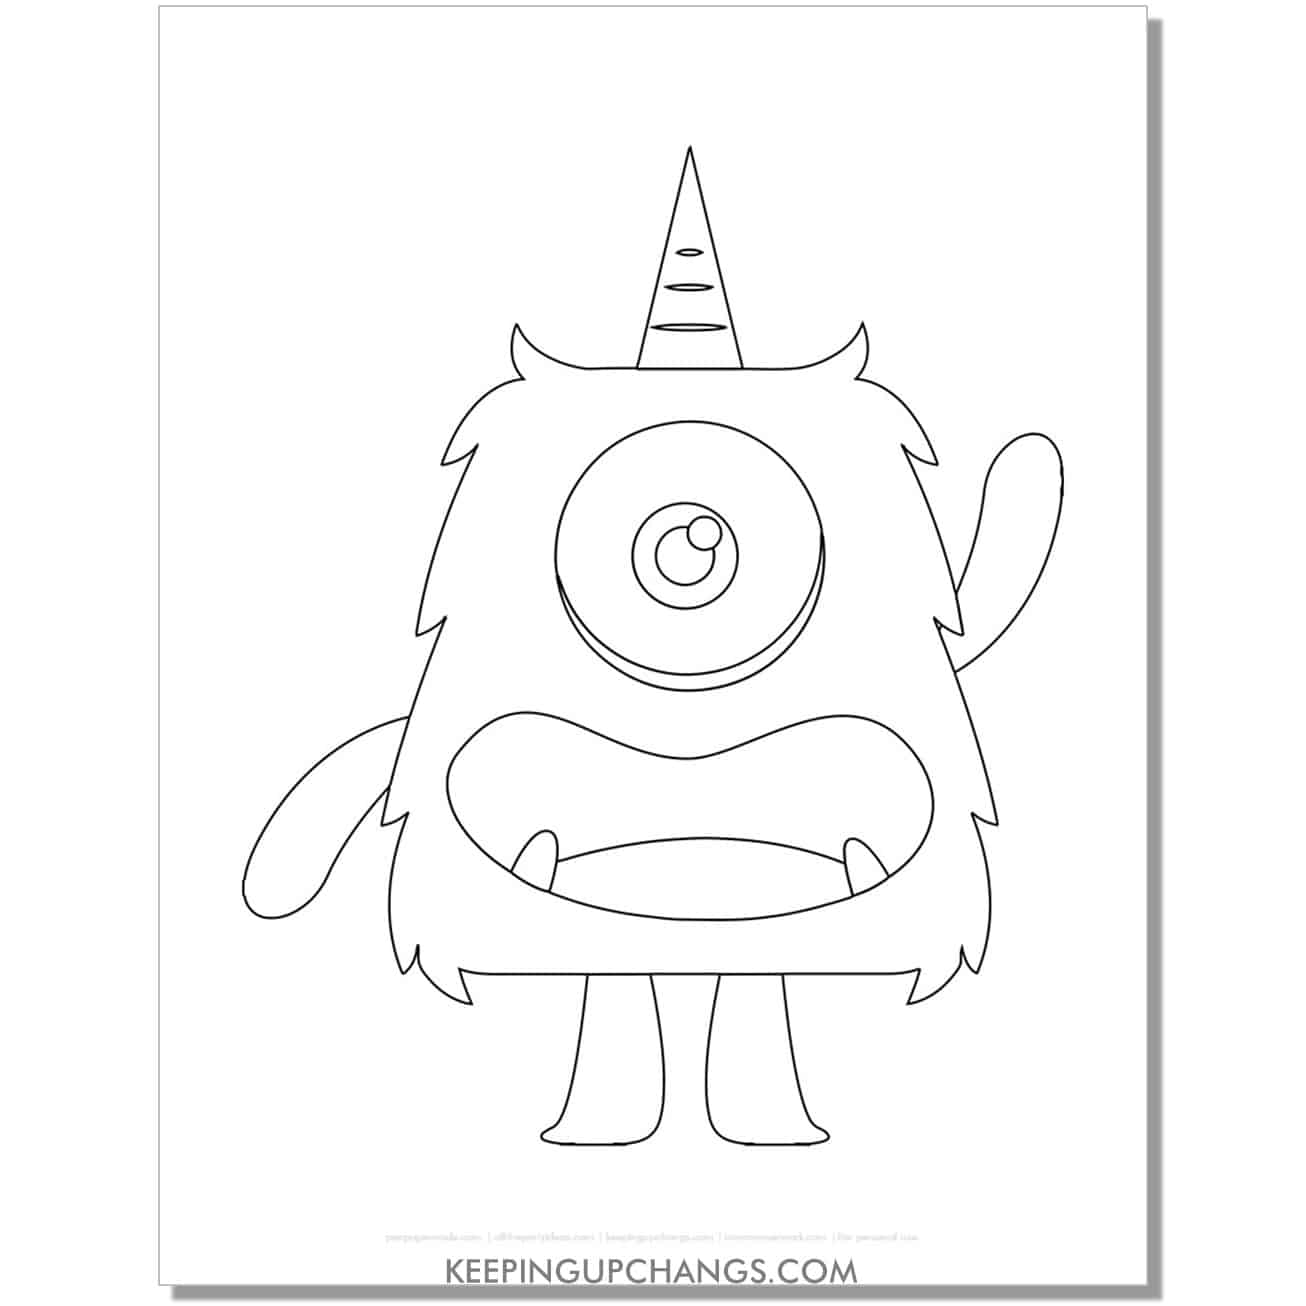 free one horned one eyed monster coloring page.